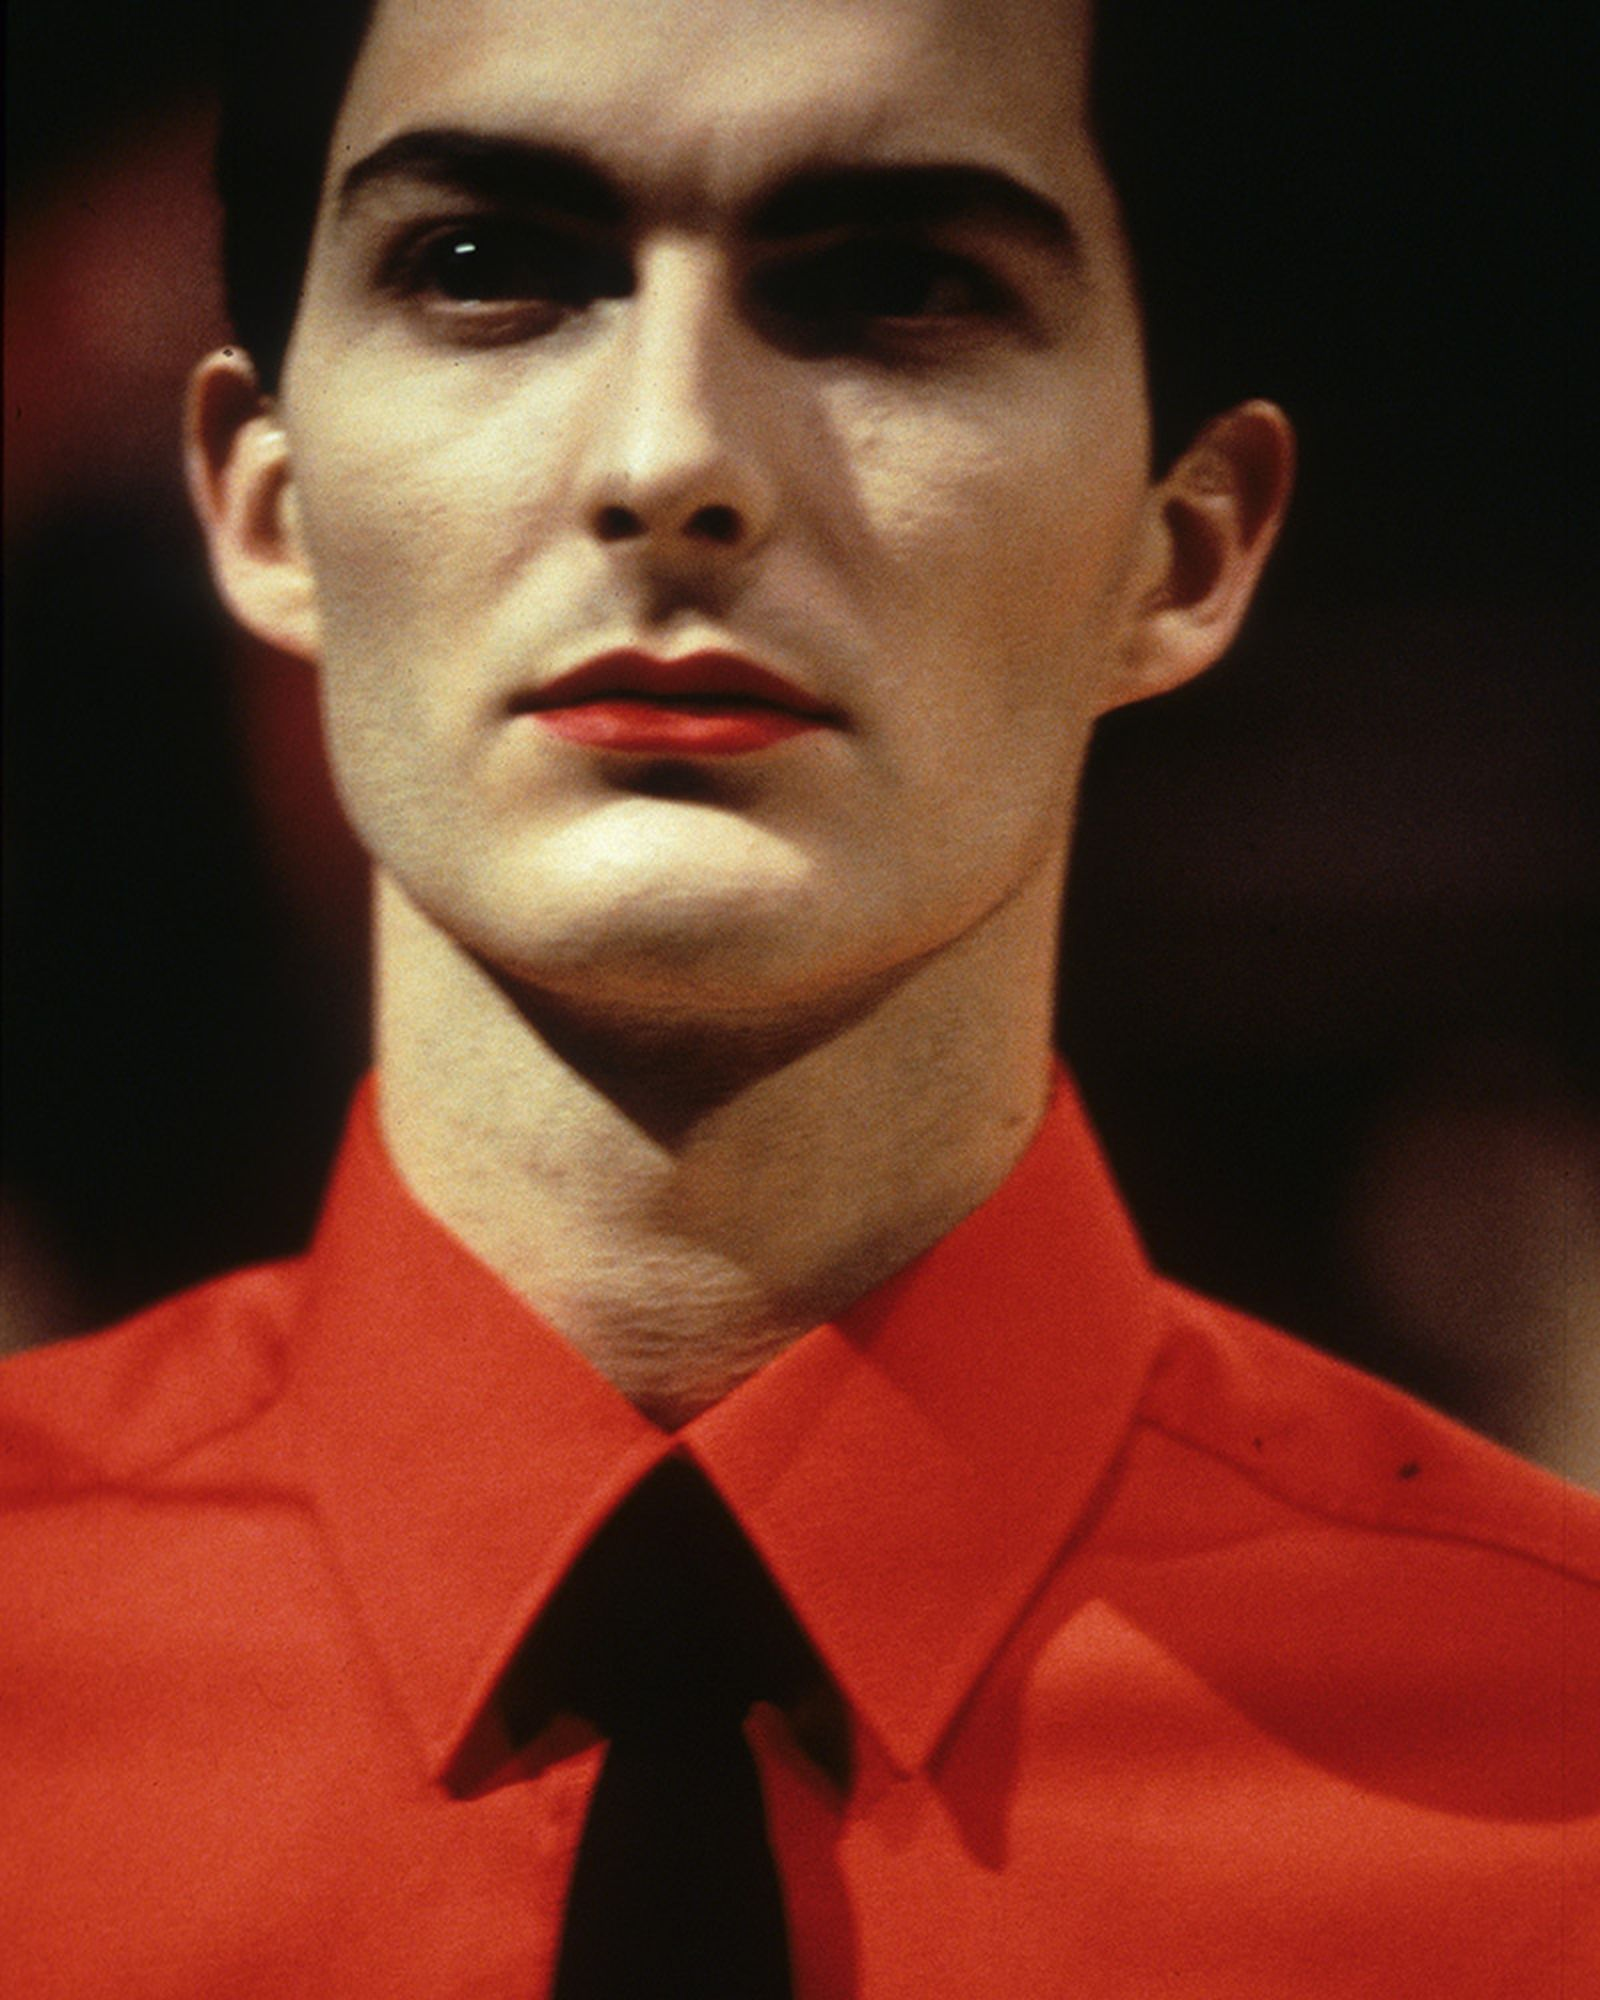 Much of Raf Simons Fall / Winter 1998 was inspired by the aesthetic of Kraftwerk